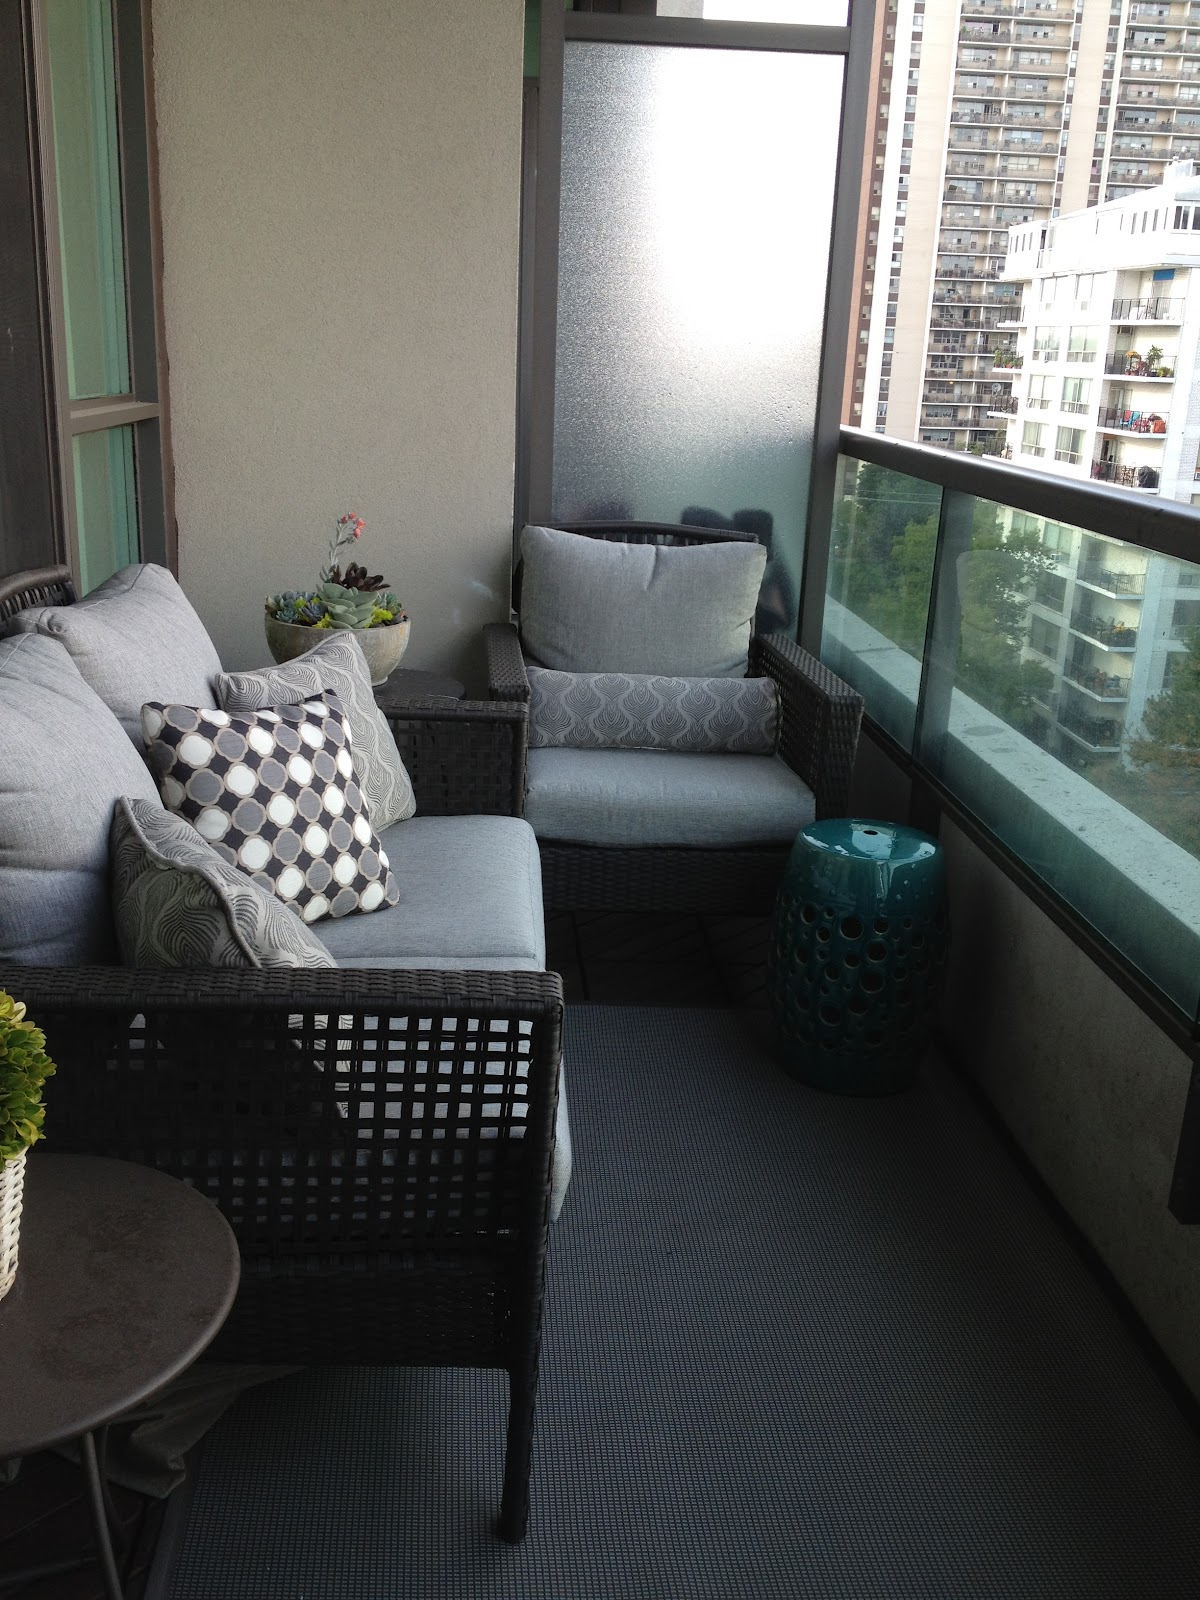 The Room: Condo Balcony